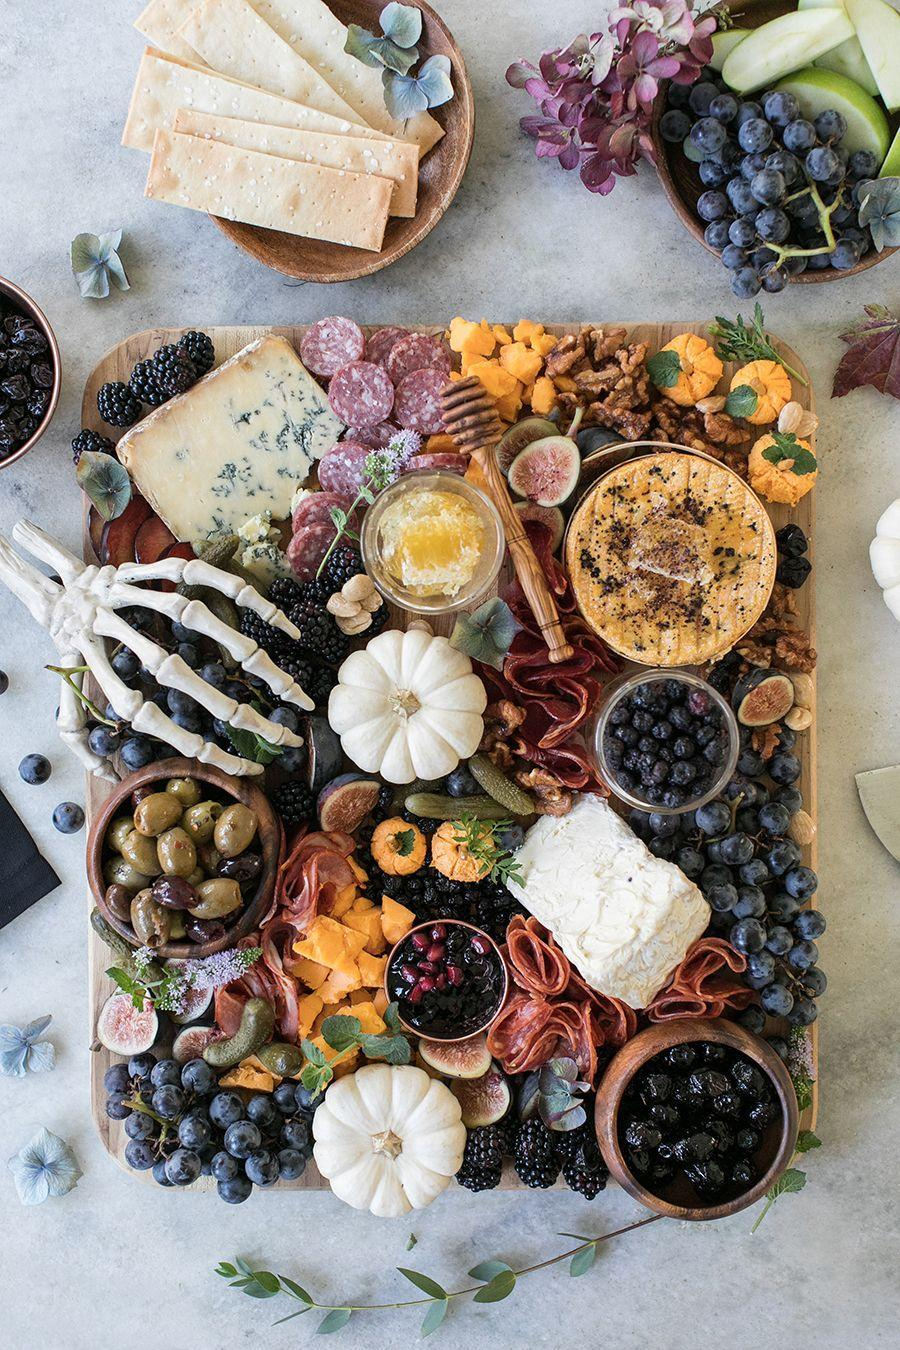 "<p>Nothing is more Instagram-worthy than a perfectly styled Halloween charcuterie board (complete with an eerie skeleton hand!). This one is almost too pretty to eat.</p><p><strong>Get the tutorial at <a href=""https://sugarandcharm.com/how-to-make-the-perfect-halloween-meat-and-cheese-board"" rel=""nofollow noopener"" target=""_blank"" data-ylk=""slk:Sugar & Charm"" class=""link rapid-noclick-resp"">Sugar & Charm</a>.</strong></p><p><a class=""link rapid-noclick-resp"" href=""https://www.amazon.com/Hosfairy-Halloween-Skeleton-Plastic-Decoration/dp/B07RWNS98L/ref=sr_1_2?tag=syn-yahoo-20&ascsubtag=%5Bartid%7C10050.g.4620%5Bsrc%7Cyahoo-us"" rel=""nofollow noopener"" target=""_blank"" data-ylk=""slk:SHOP SKELETON HANDS"">SHOP SKELETON HANDS</a></p>"